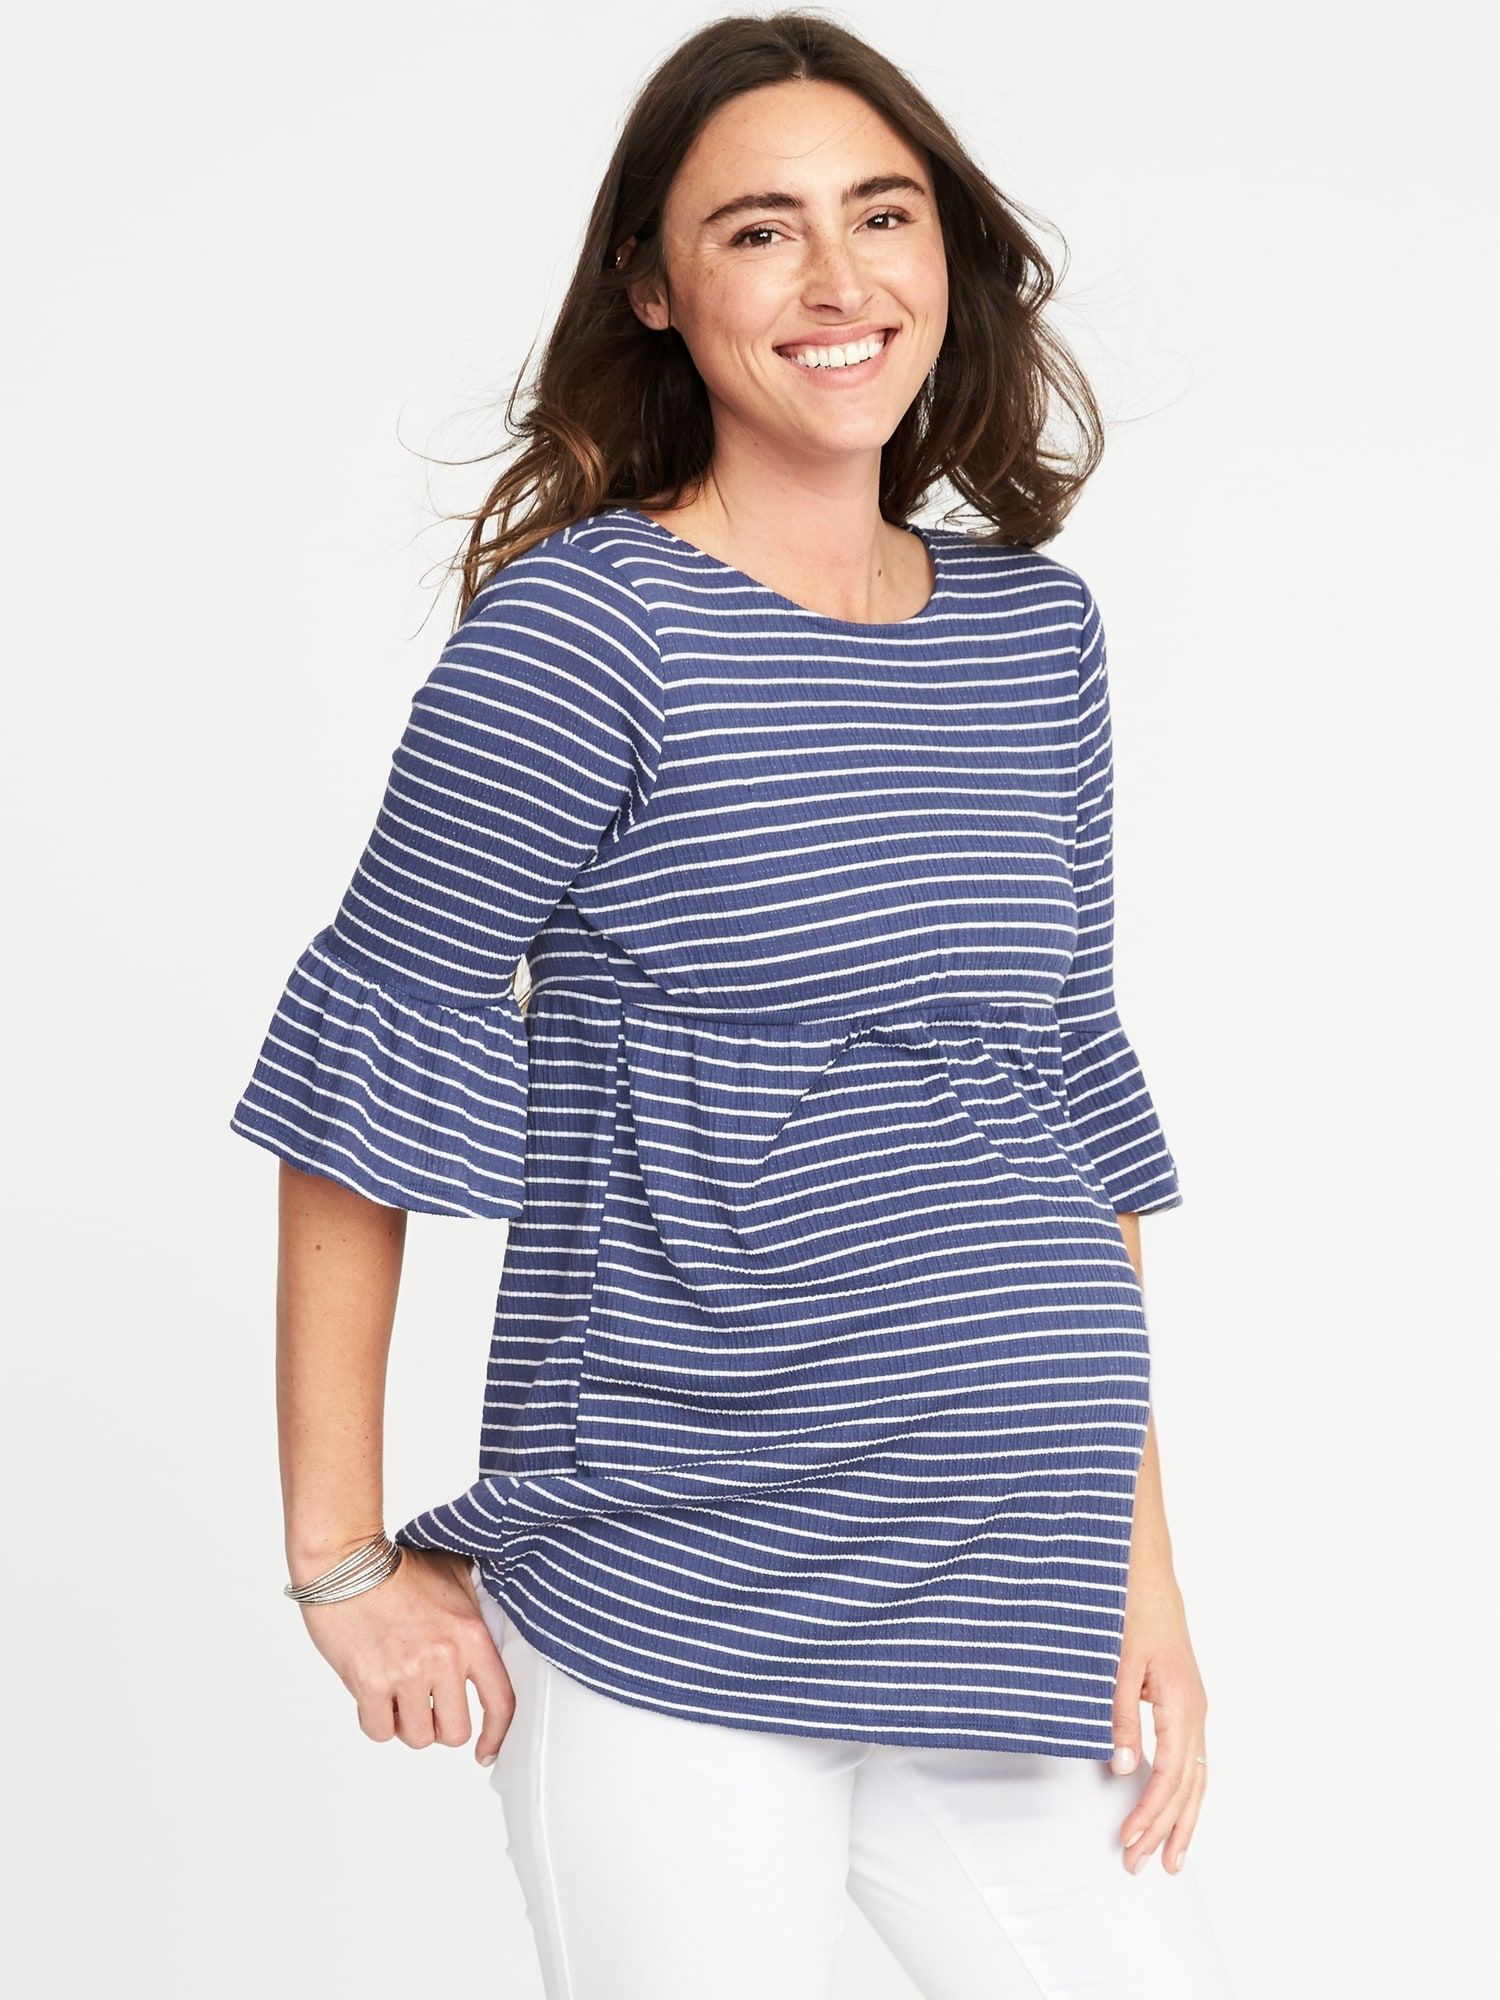 cb0c5fd8b38df Simple but cute cut and style Old Navy Maternity, Cute Cuts, Cut And Style